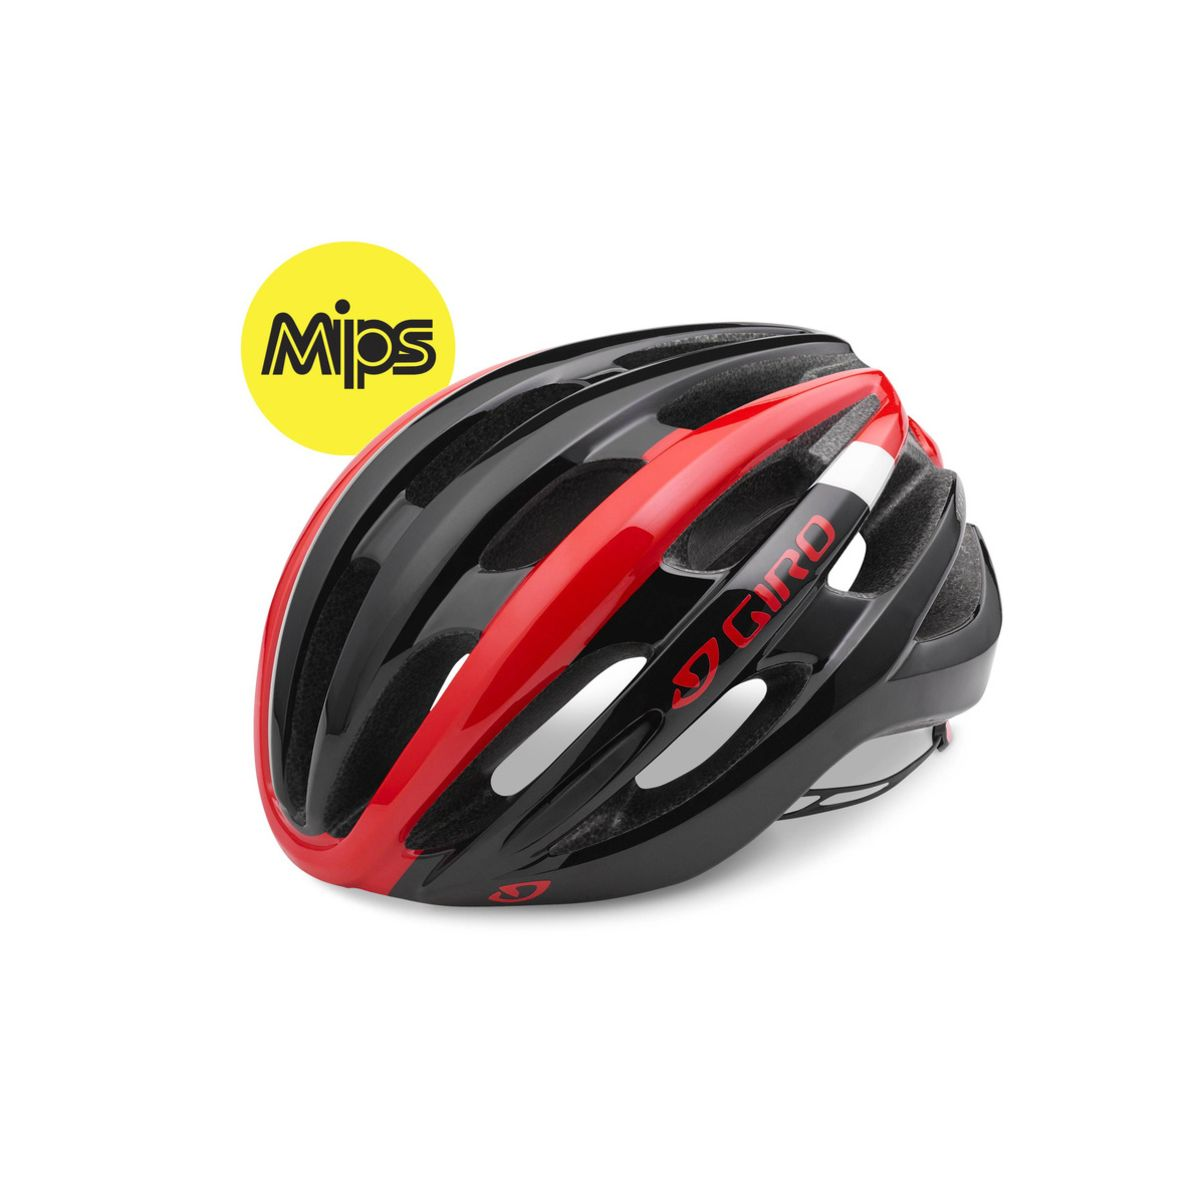 FORAY MIPS cycle helmet